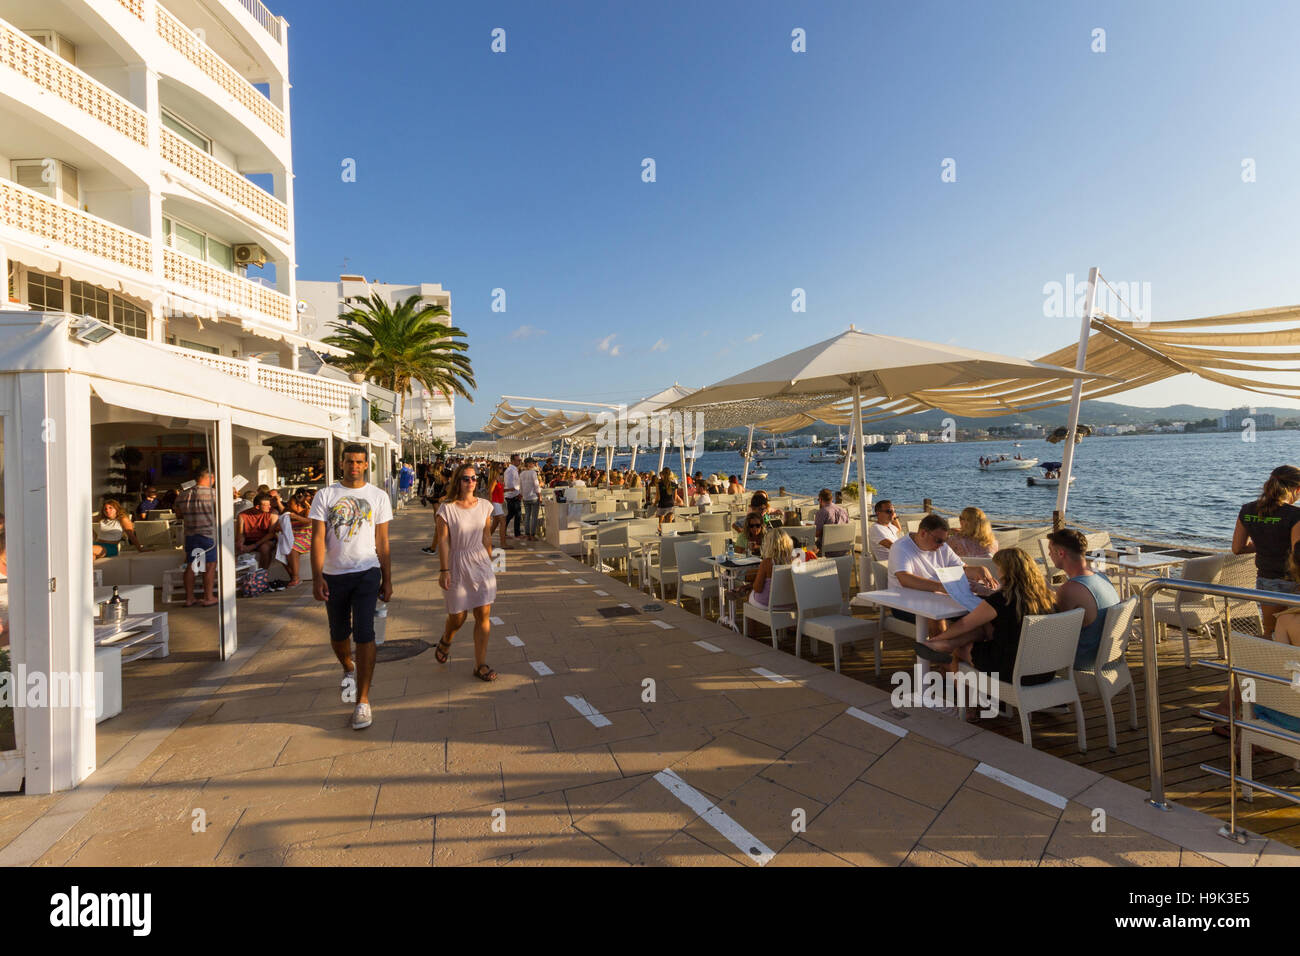 Spain, Balearic Islands, Ibiza, Sant Antoni de Portmany, people at Cafè del Mar Stock Photo